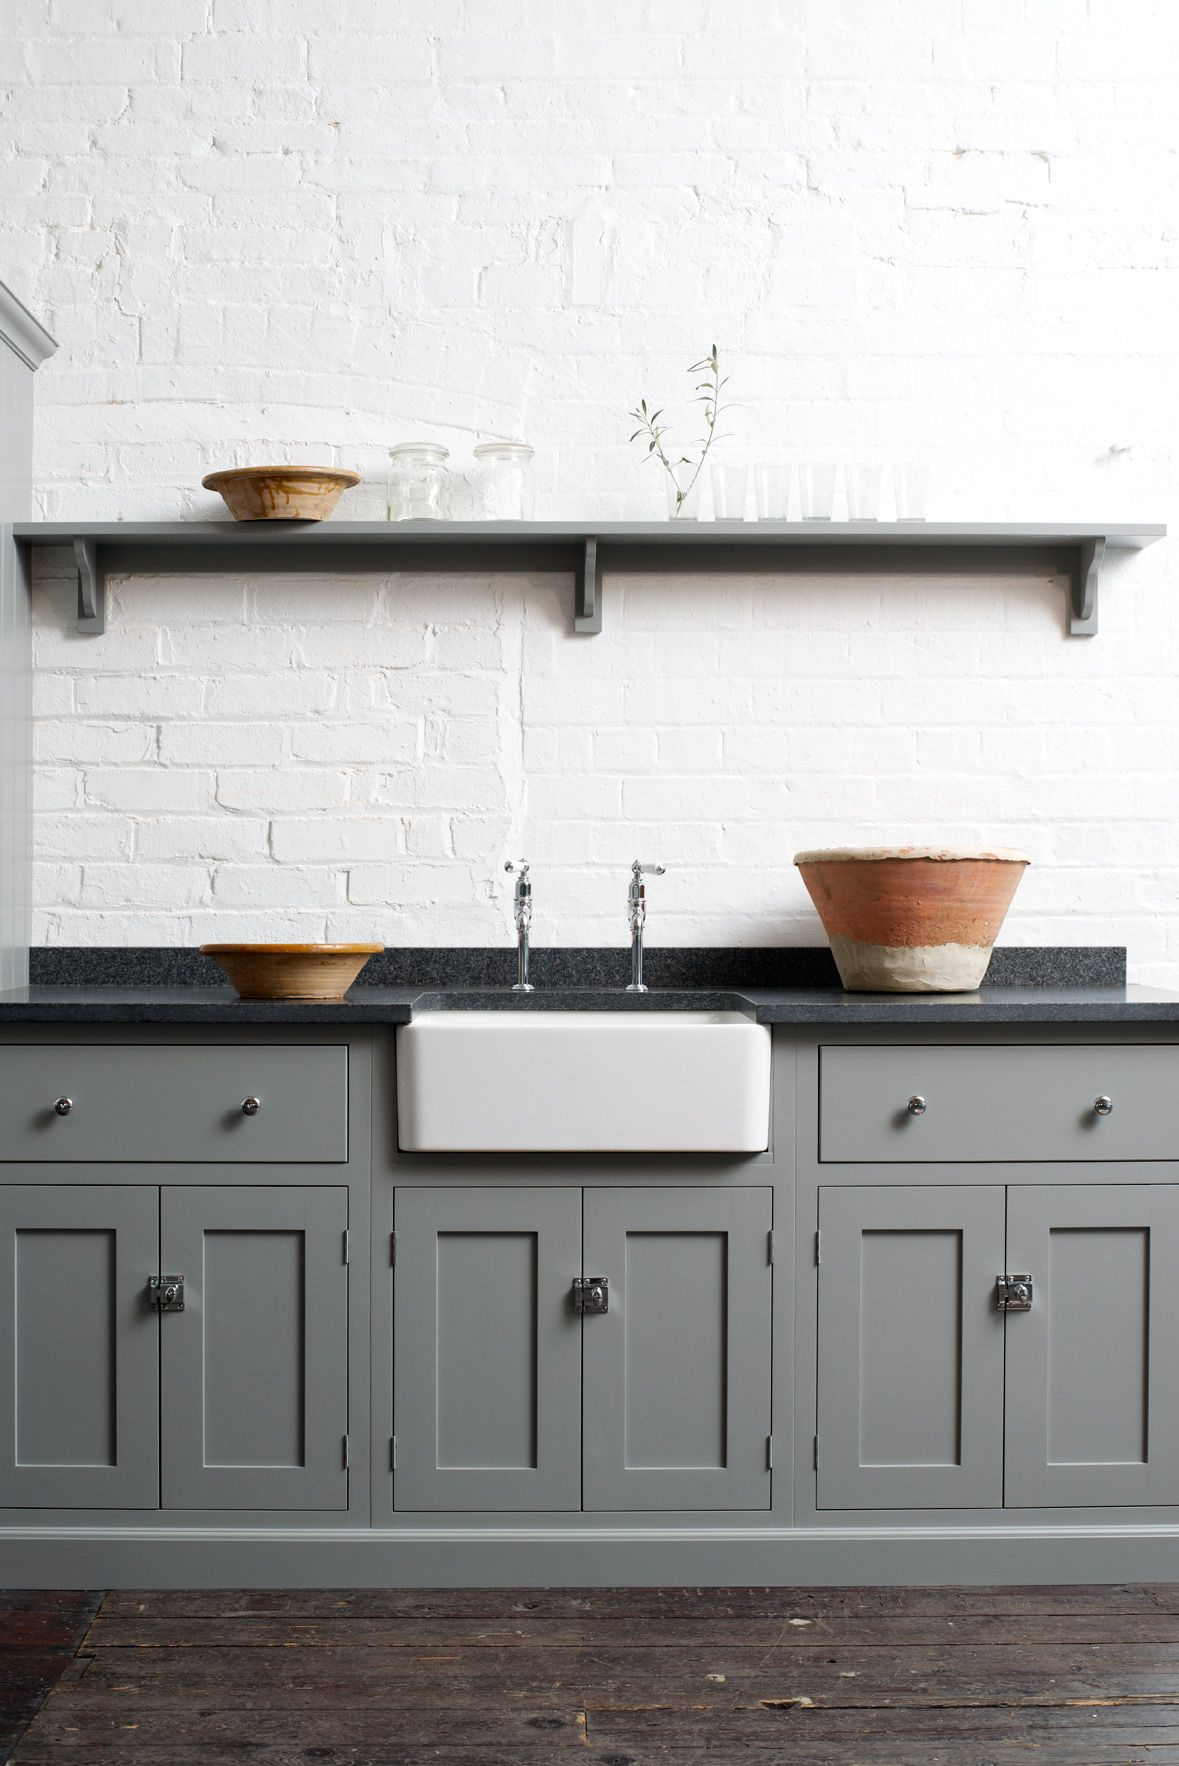 The Brand New Loft Shaker Kitchen At Cotes Mill By Devol Kitchens This Contemporary Shaker Black Kitchen Countertops Loft Kitchen Farmhouse Kitchen Cabinets